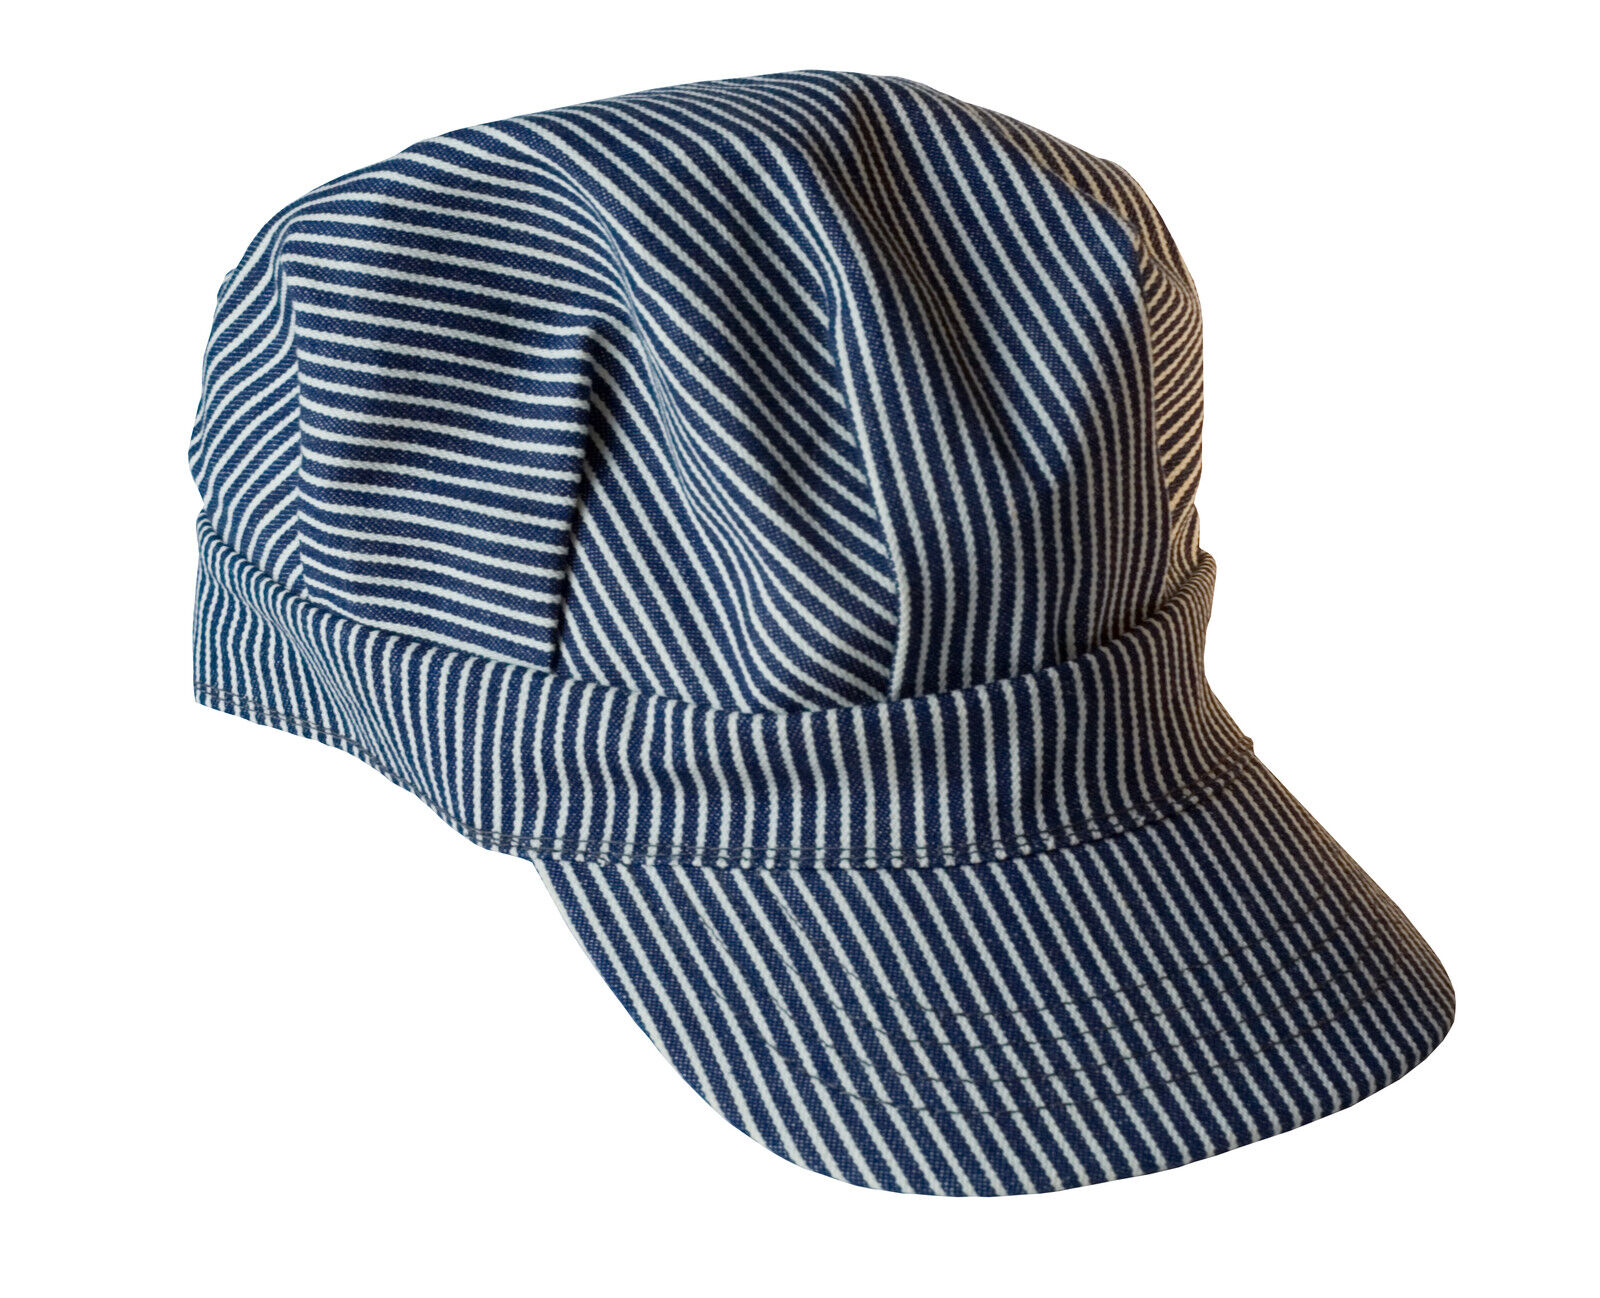 Train engineer hats and costume sets for train-themed parties and events. We offer train engineer hats in sizes specifically for men, women, or children. Many selections of engineer hats are available in either economy or deluxe versions and our train engineer hats available in .